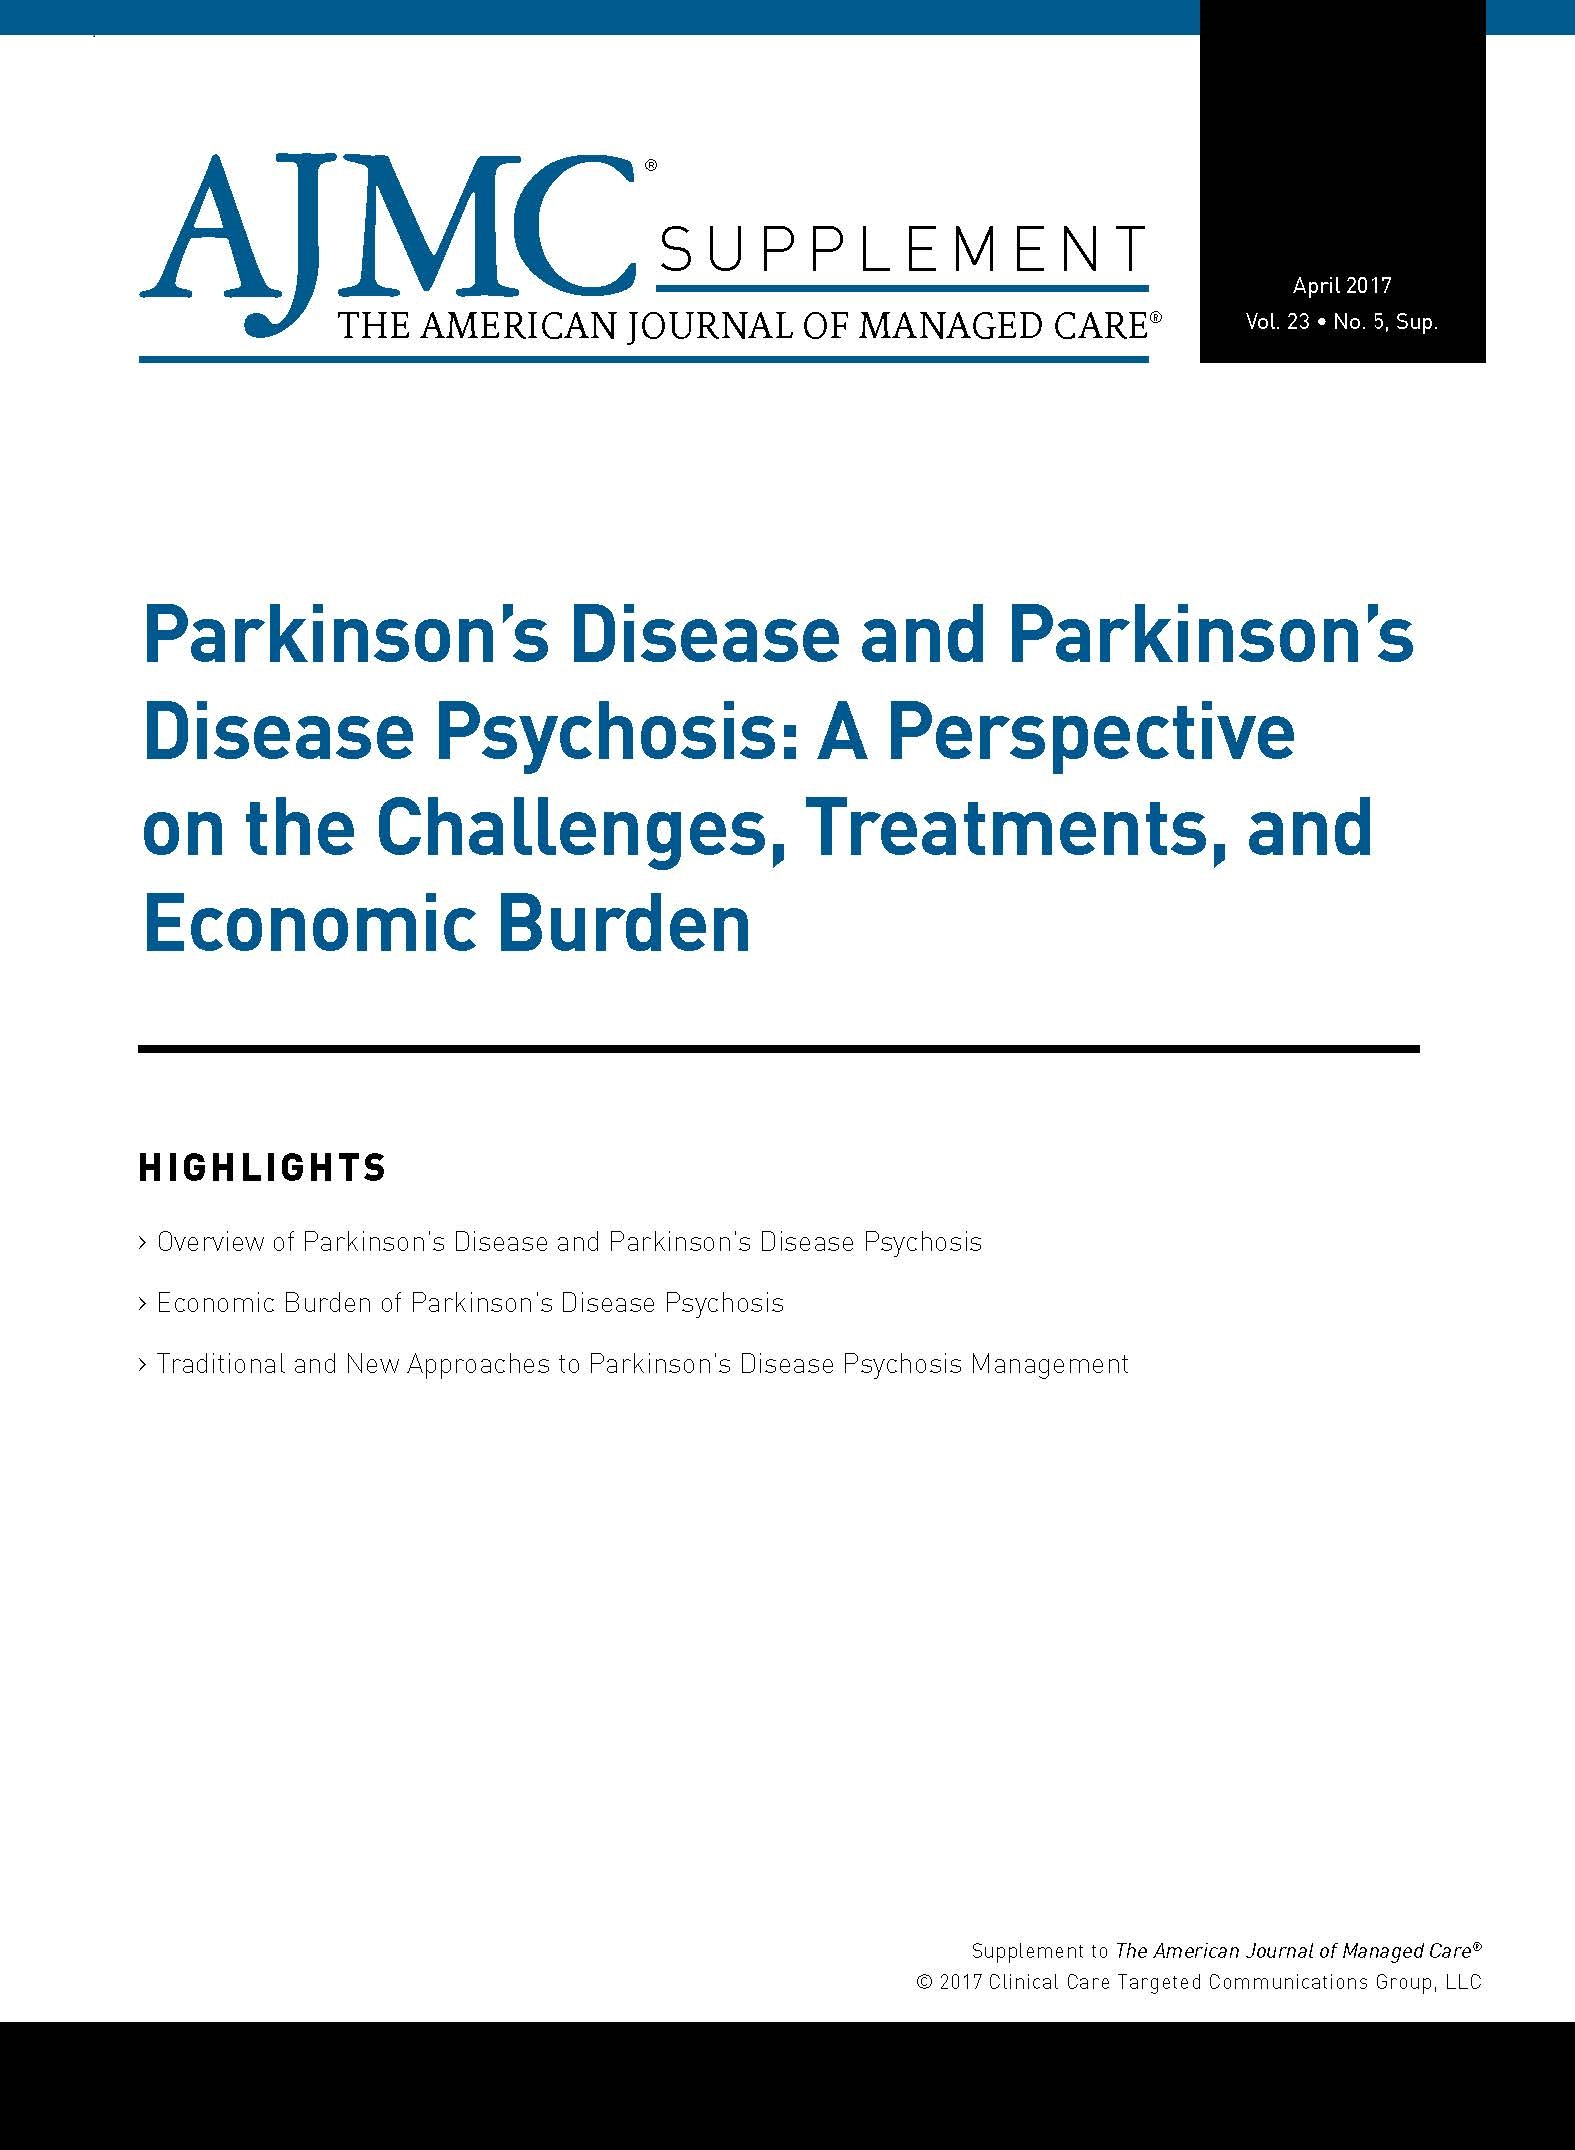 Parkinson's Disease and Parkinson's Disease Psychosis: A Perspective on the Challenges, Treatments, and Economic Burden